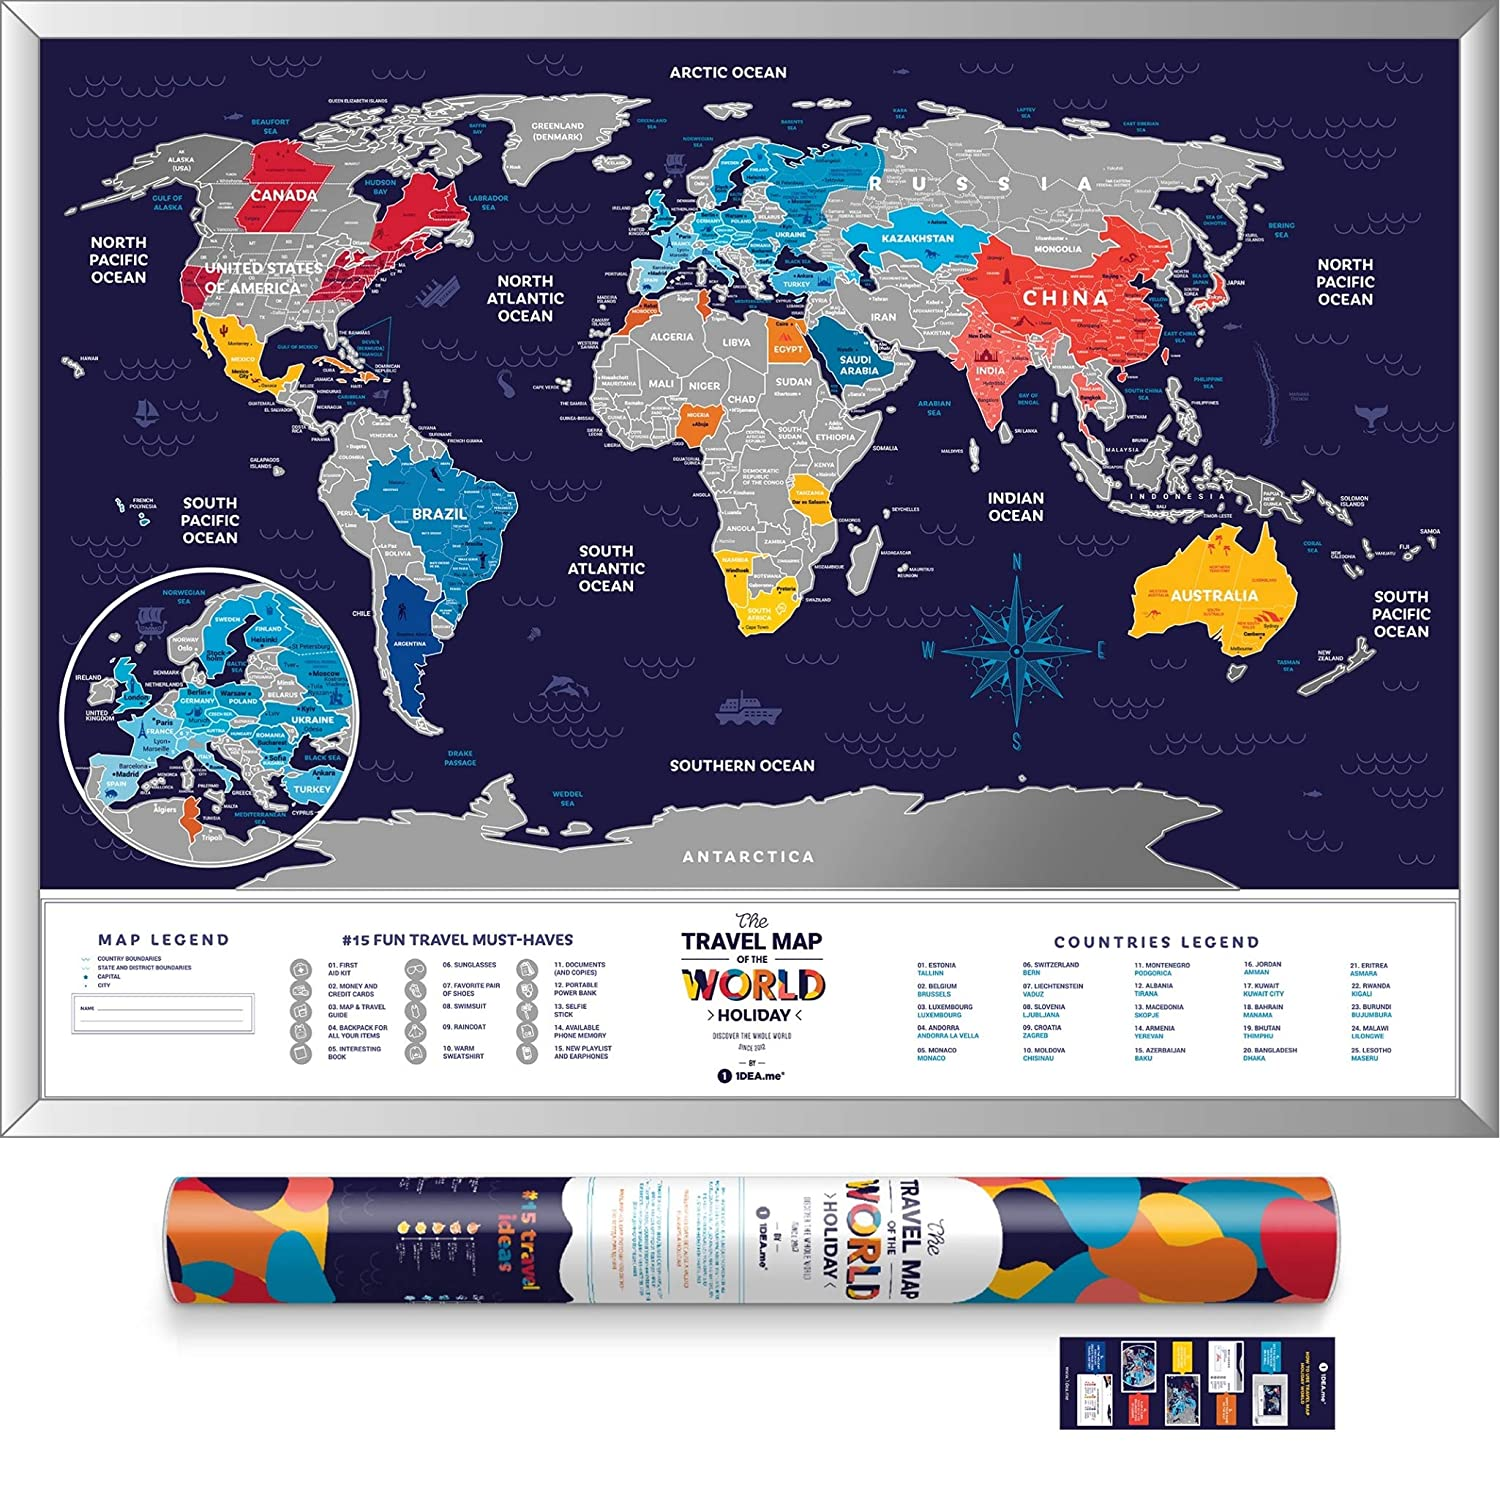 Large Scratch Off World Map - Premium Edition - 31.5 x 23.6 - Places I've Been Holiday World Map - Canadian Provinces Outlined - Laminated Paper Map by 1DEA.me HW